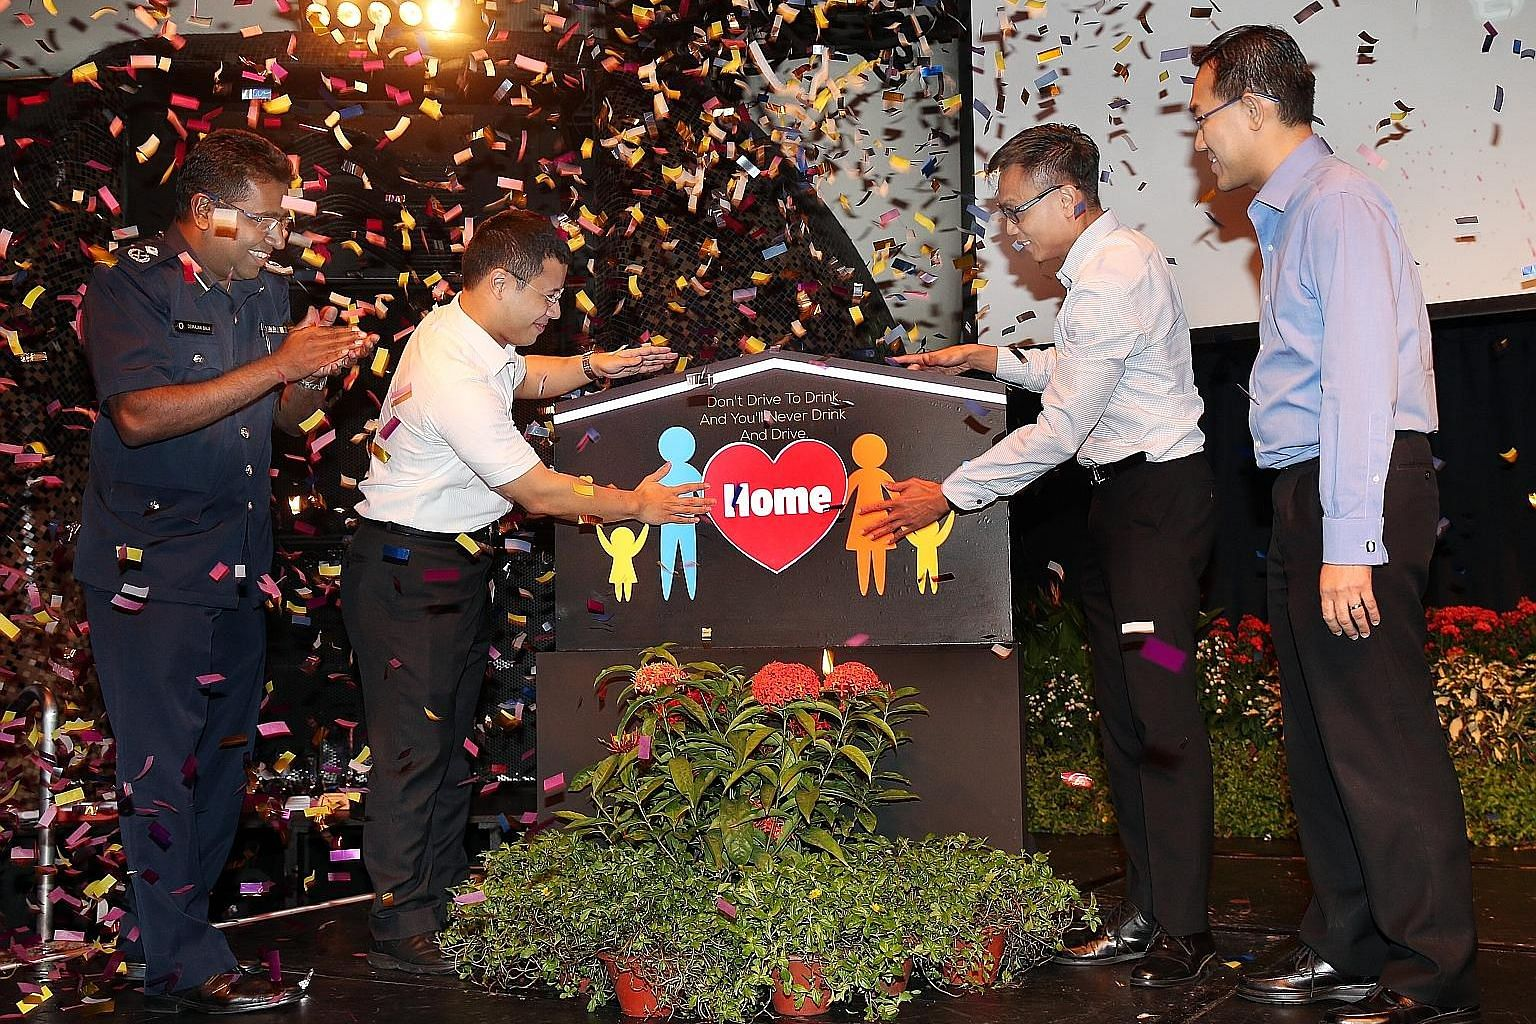 From left: Deputy commander of the Traffic Police and assistant commissioner of police Devrajan Bala, Senior Minister of State Desmond Lee, executive director of the Singapore Road Safety Council, Mr Chua Chee Wai, and executive vice-president of the